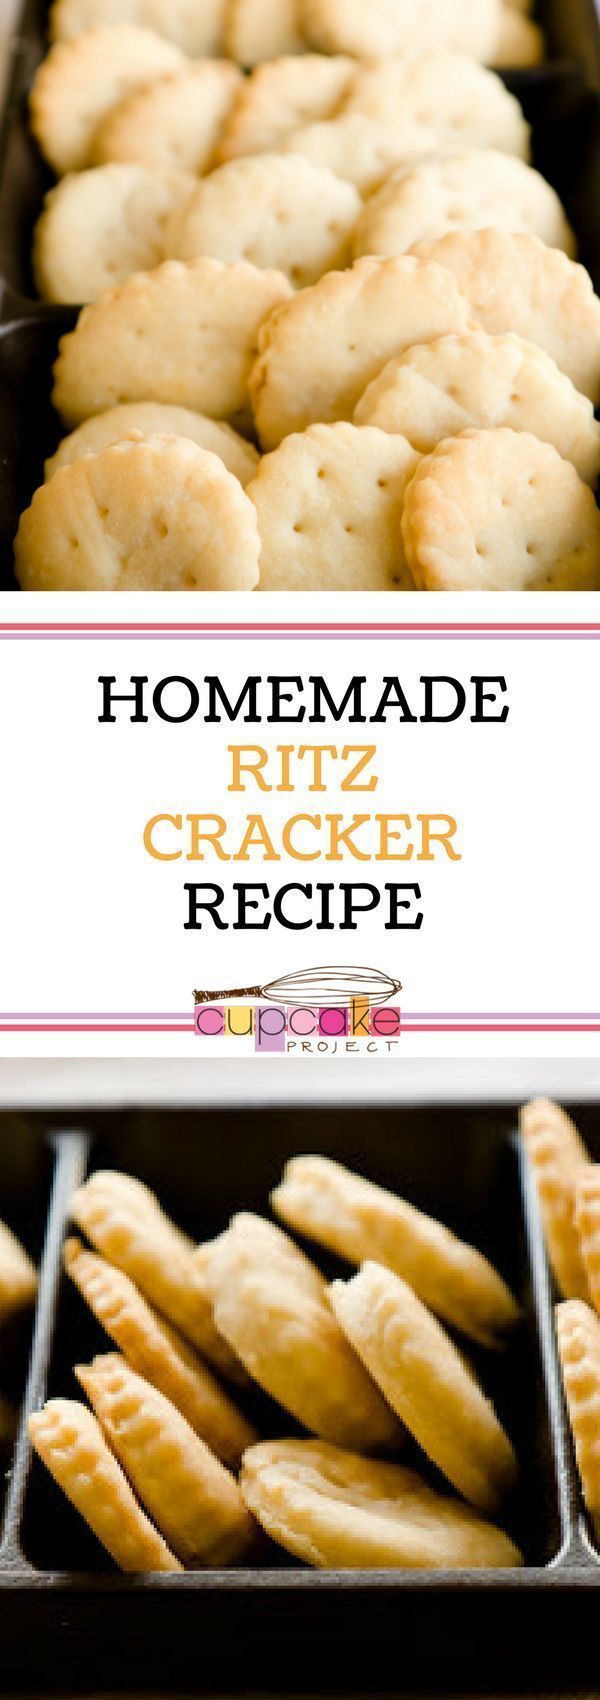 Easy homemade ritz crackers recipe that your kids and whole family will love! Enjoy Ritz crackers without high fructose corn syrup and partially hydrogenated oils using this amazing recipe. For more simple baking desserts recipes and homemade sweet treats